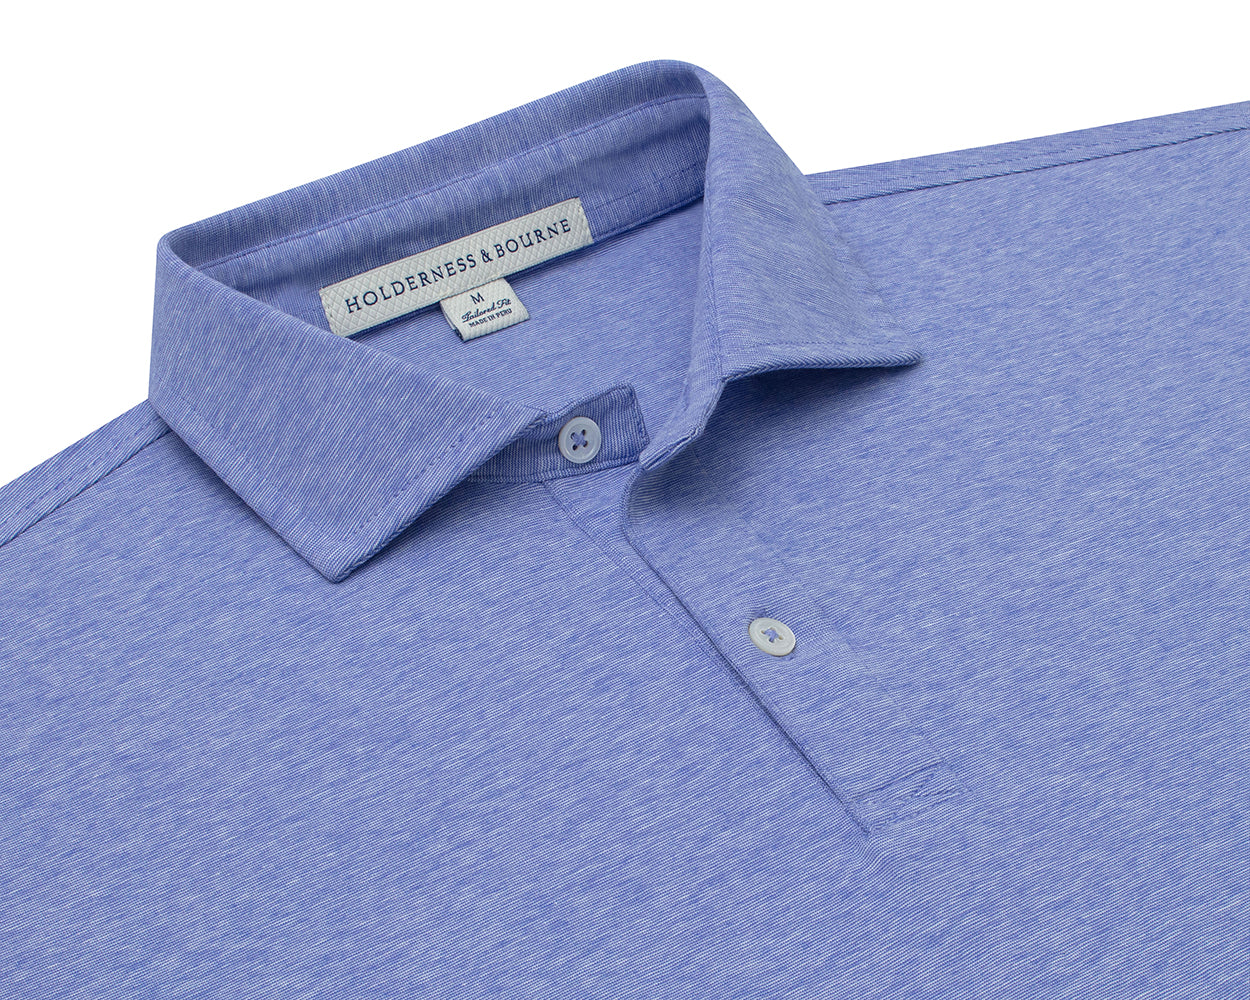 Holderness & Bourne - Cotton Shirts